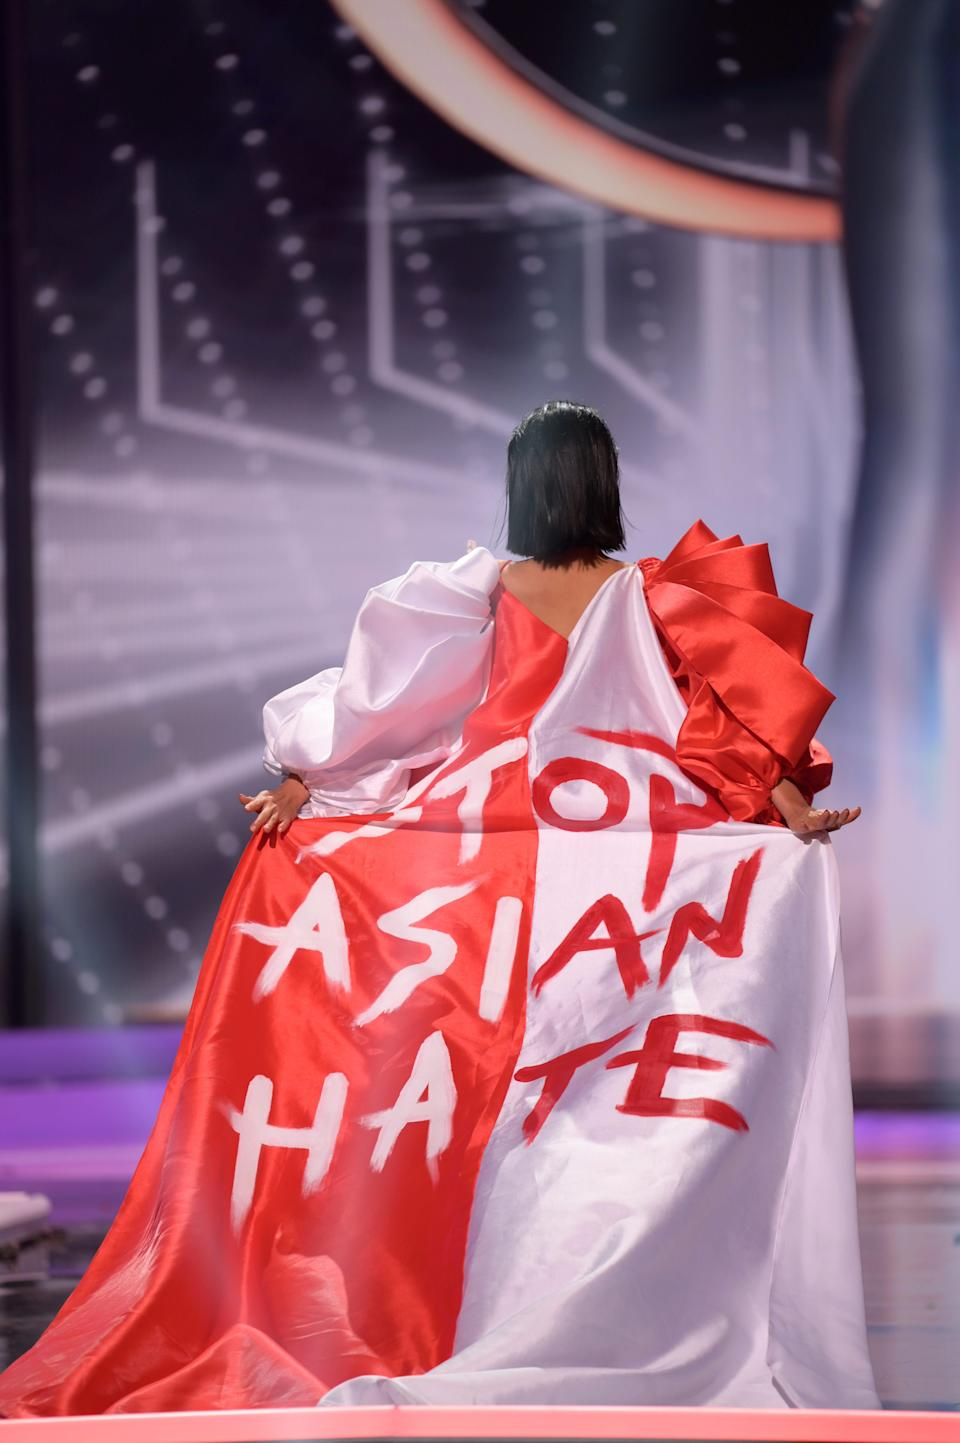 Bernadette Belle Ong, Miss Universe Singapore 2020, on stage during the National Costume Show at the Seminole Hard Rock Hotel & Casino in Hollywood, Florida on May 13, 2021.